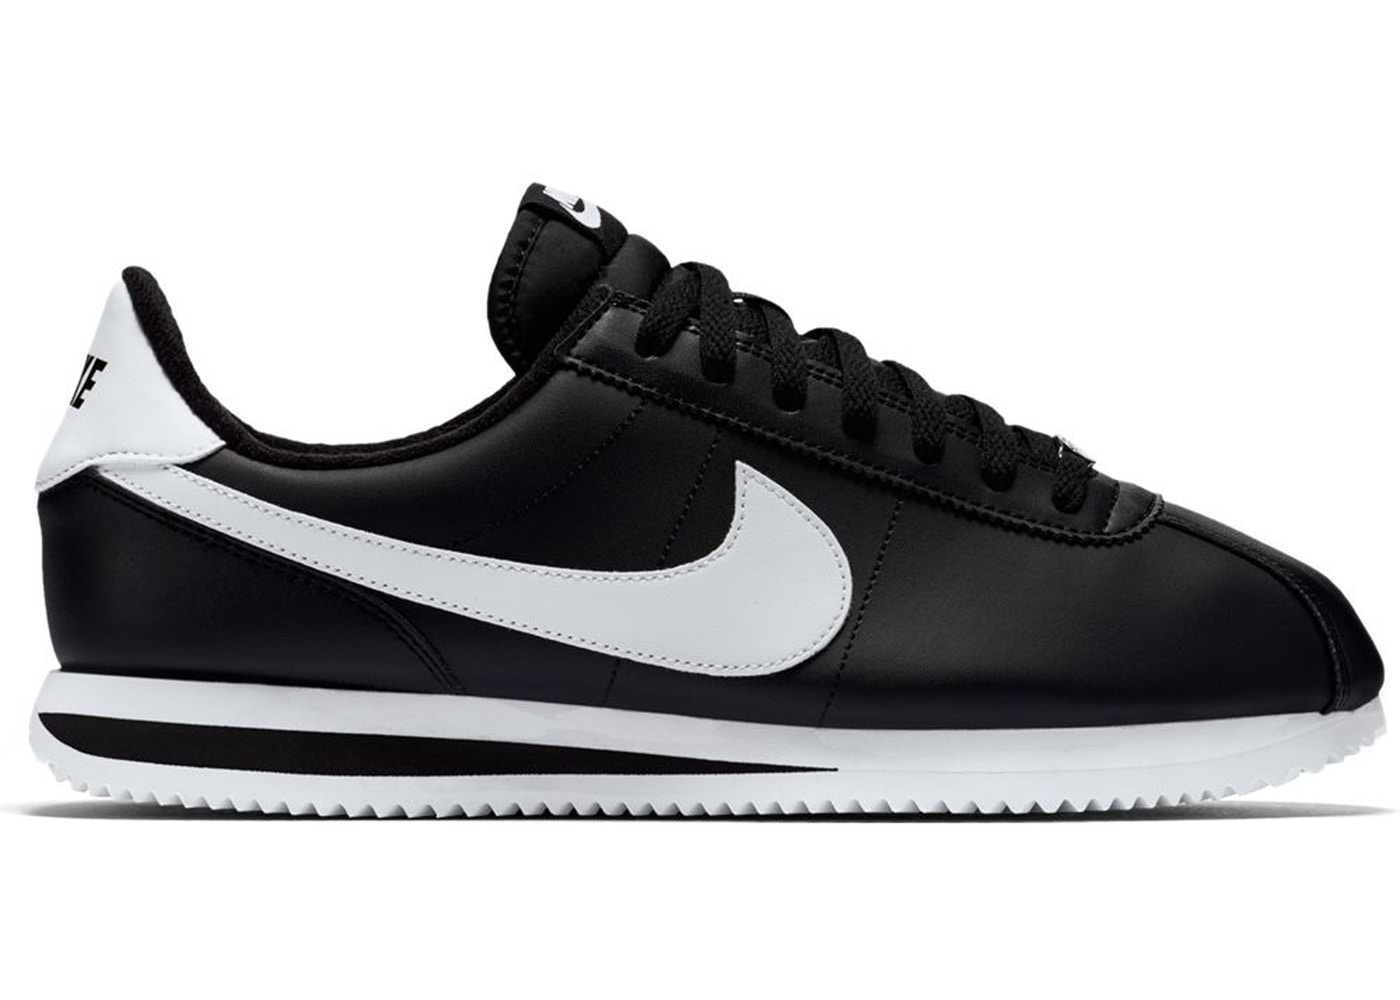 low cost 0f45a 8f0dc Sell. or Ask. Size  14. View All Bids. Nike Cortez Basic Black White